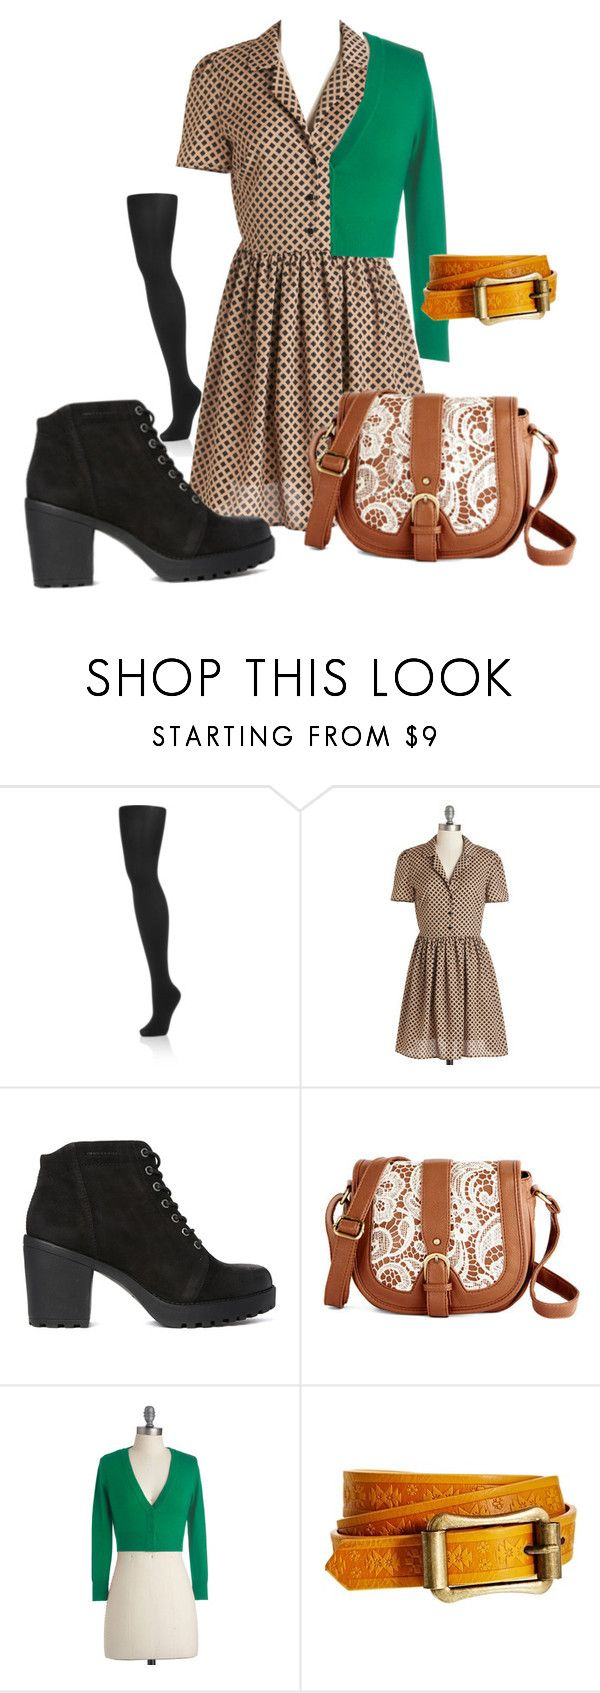 """Clara Inspired - Series 8 Promo"" by locketofember ❤ liked on Polyvore featuring Accessorize, Vagabond, ASOS, doctorwho, ClaraOswald, claraoswinoswald and everydaycosplay"